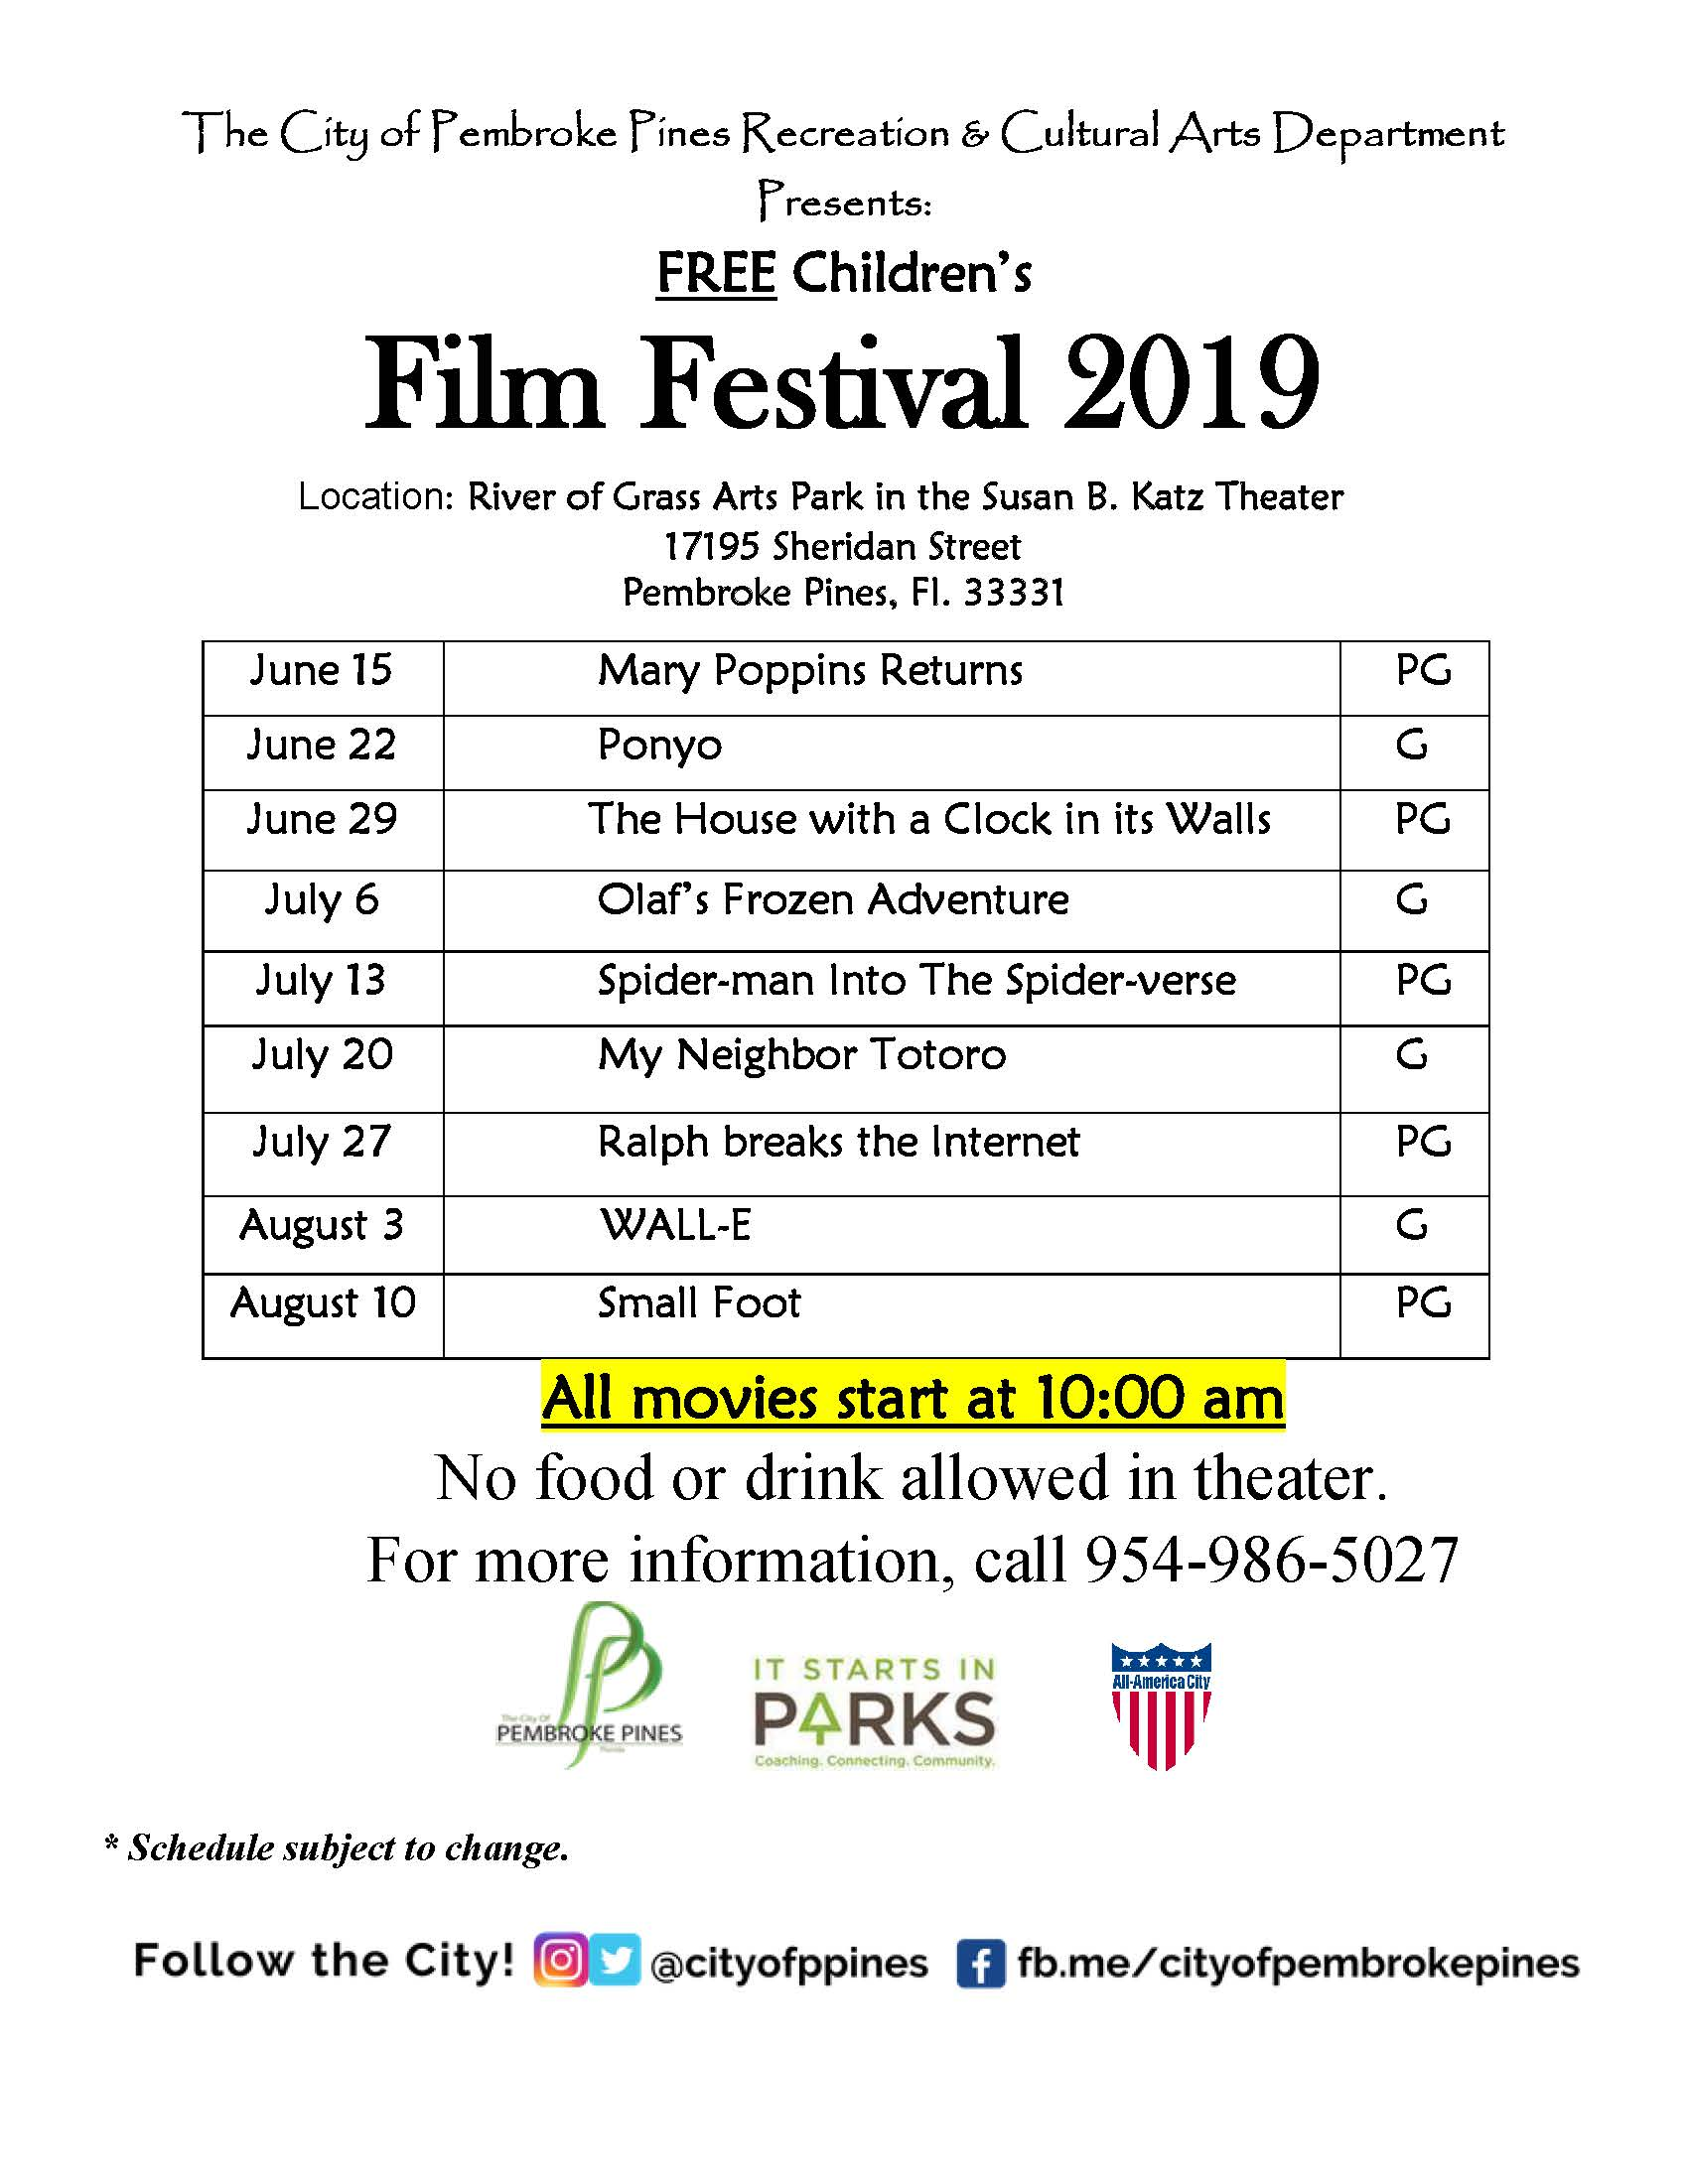 Film festival 2019 schedule of films